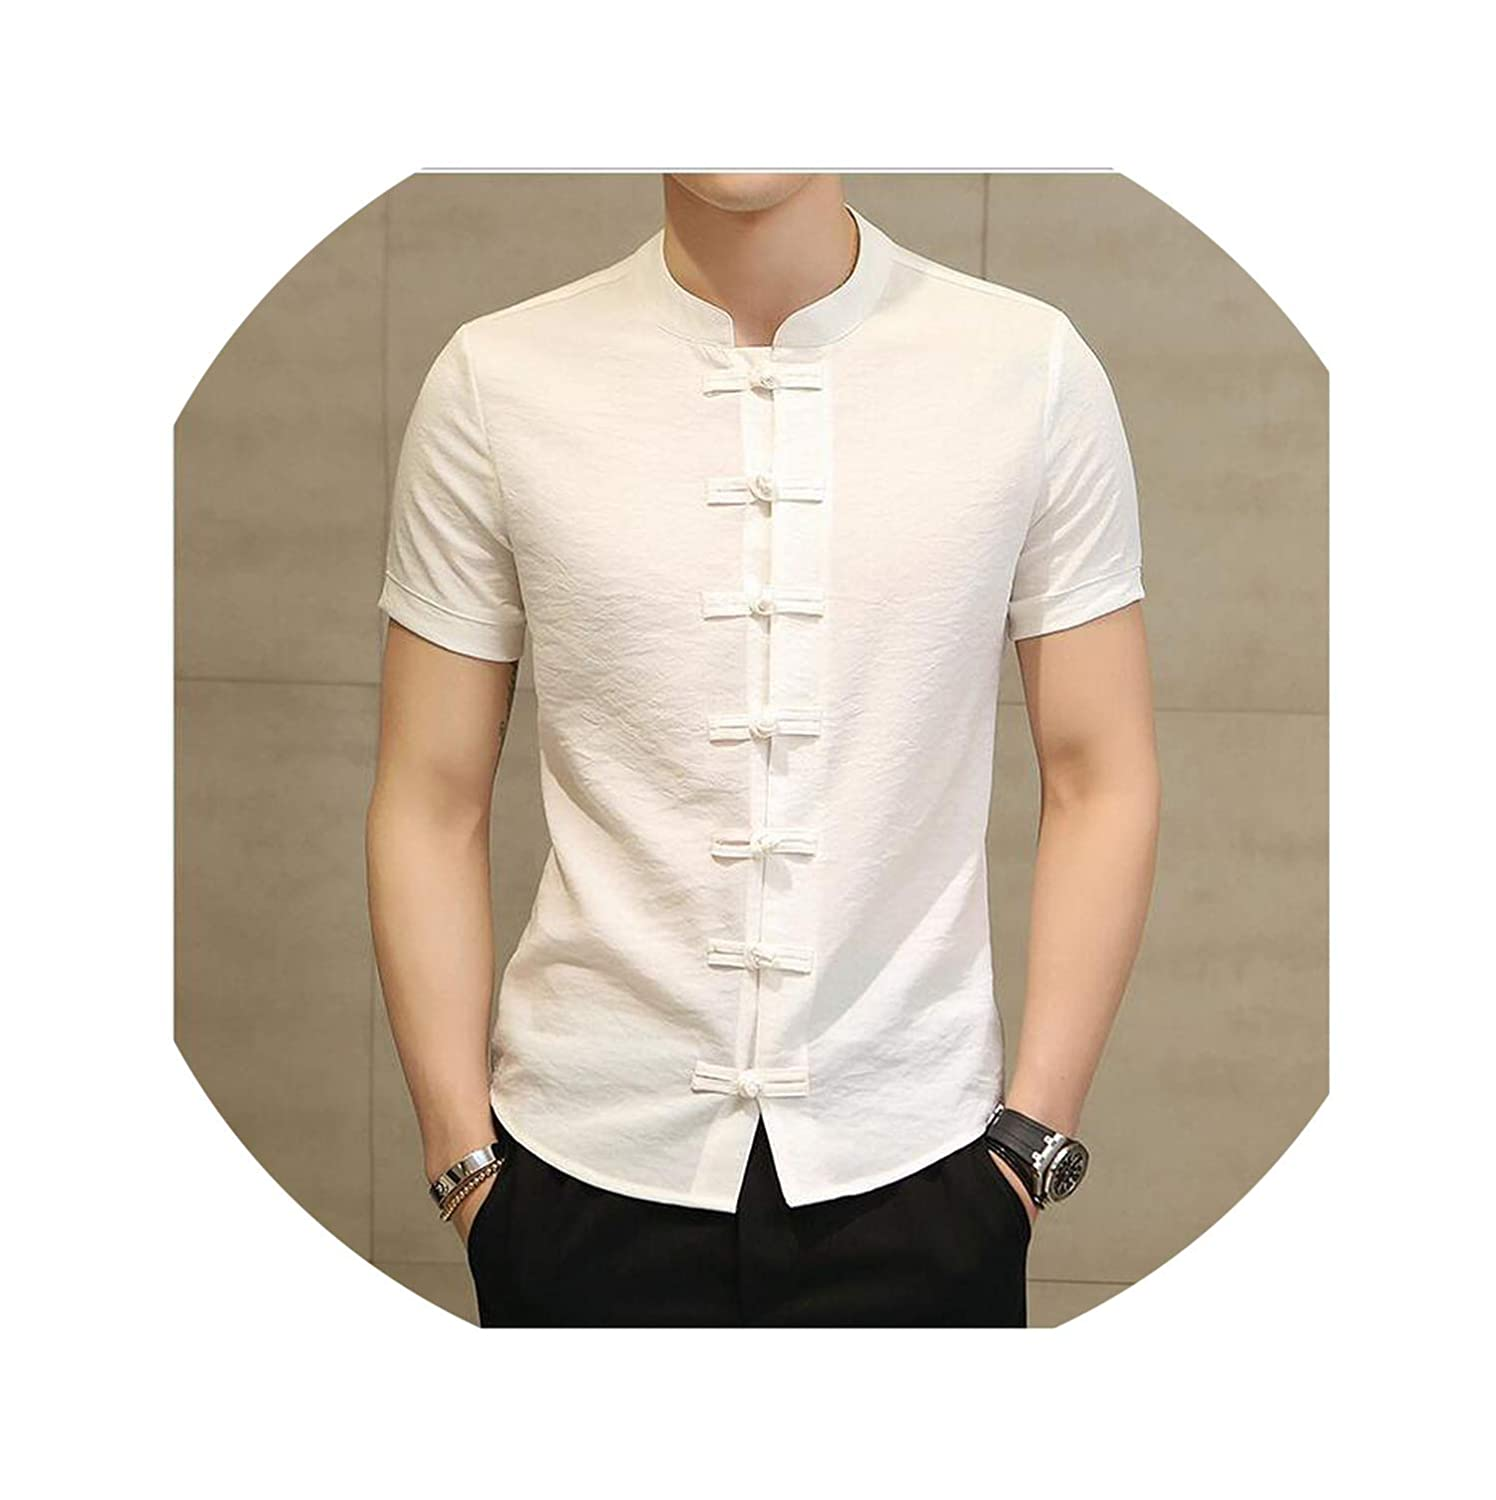 FULLINE 2019 Summer Men Shirt Chinese Style Linen Slim Fit Casual Short Sleeves Shirt